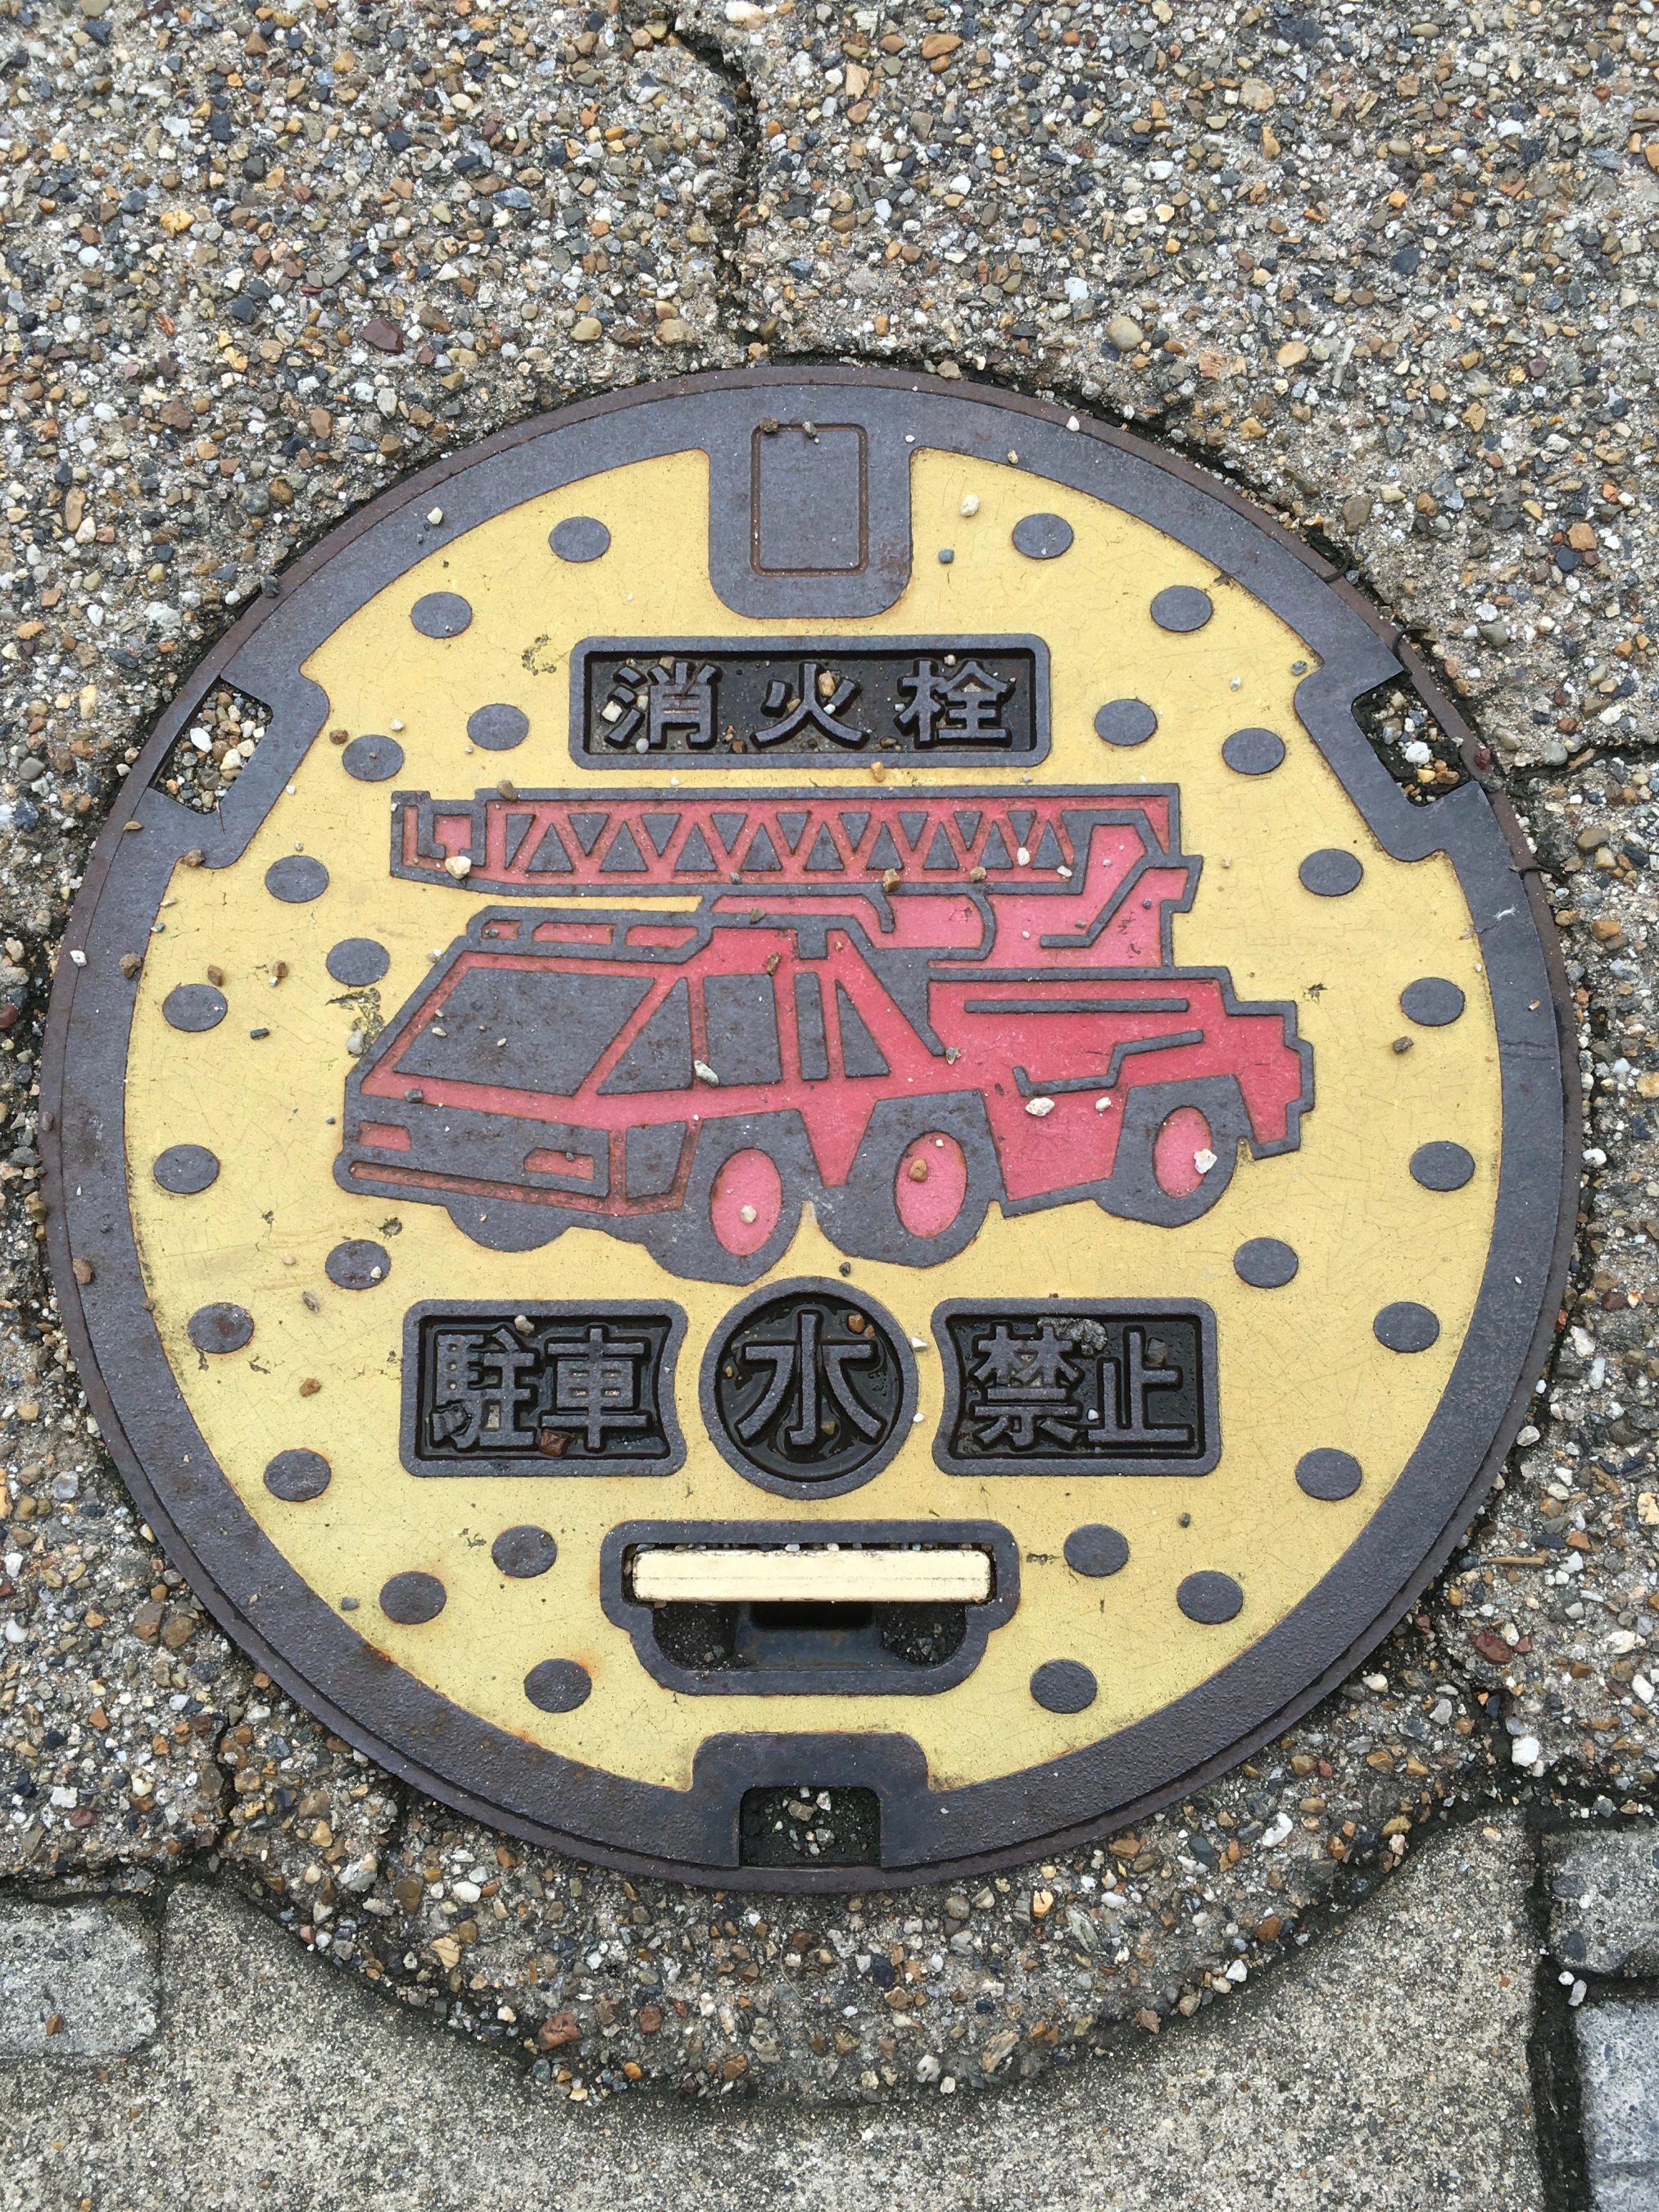 Here the kanji for fire (middle top) and water (middle bottom) are found together on a man-hole cover in Uji. It is the best example I found of the two kanji together and reminds us of their interconnectedness.